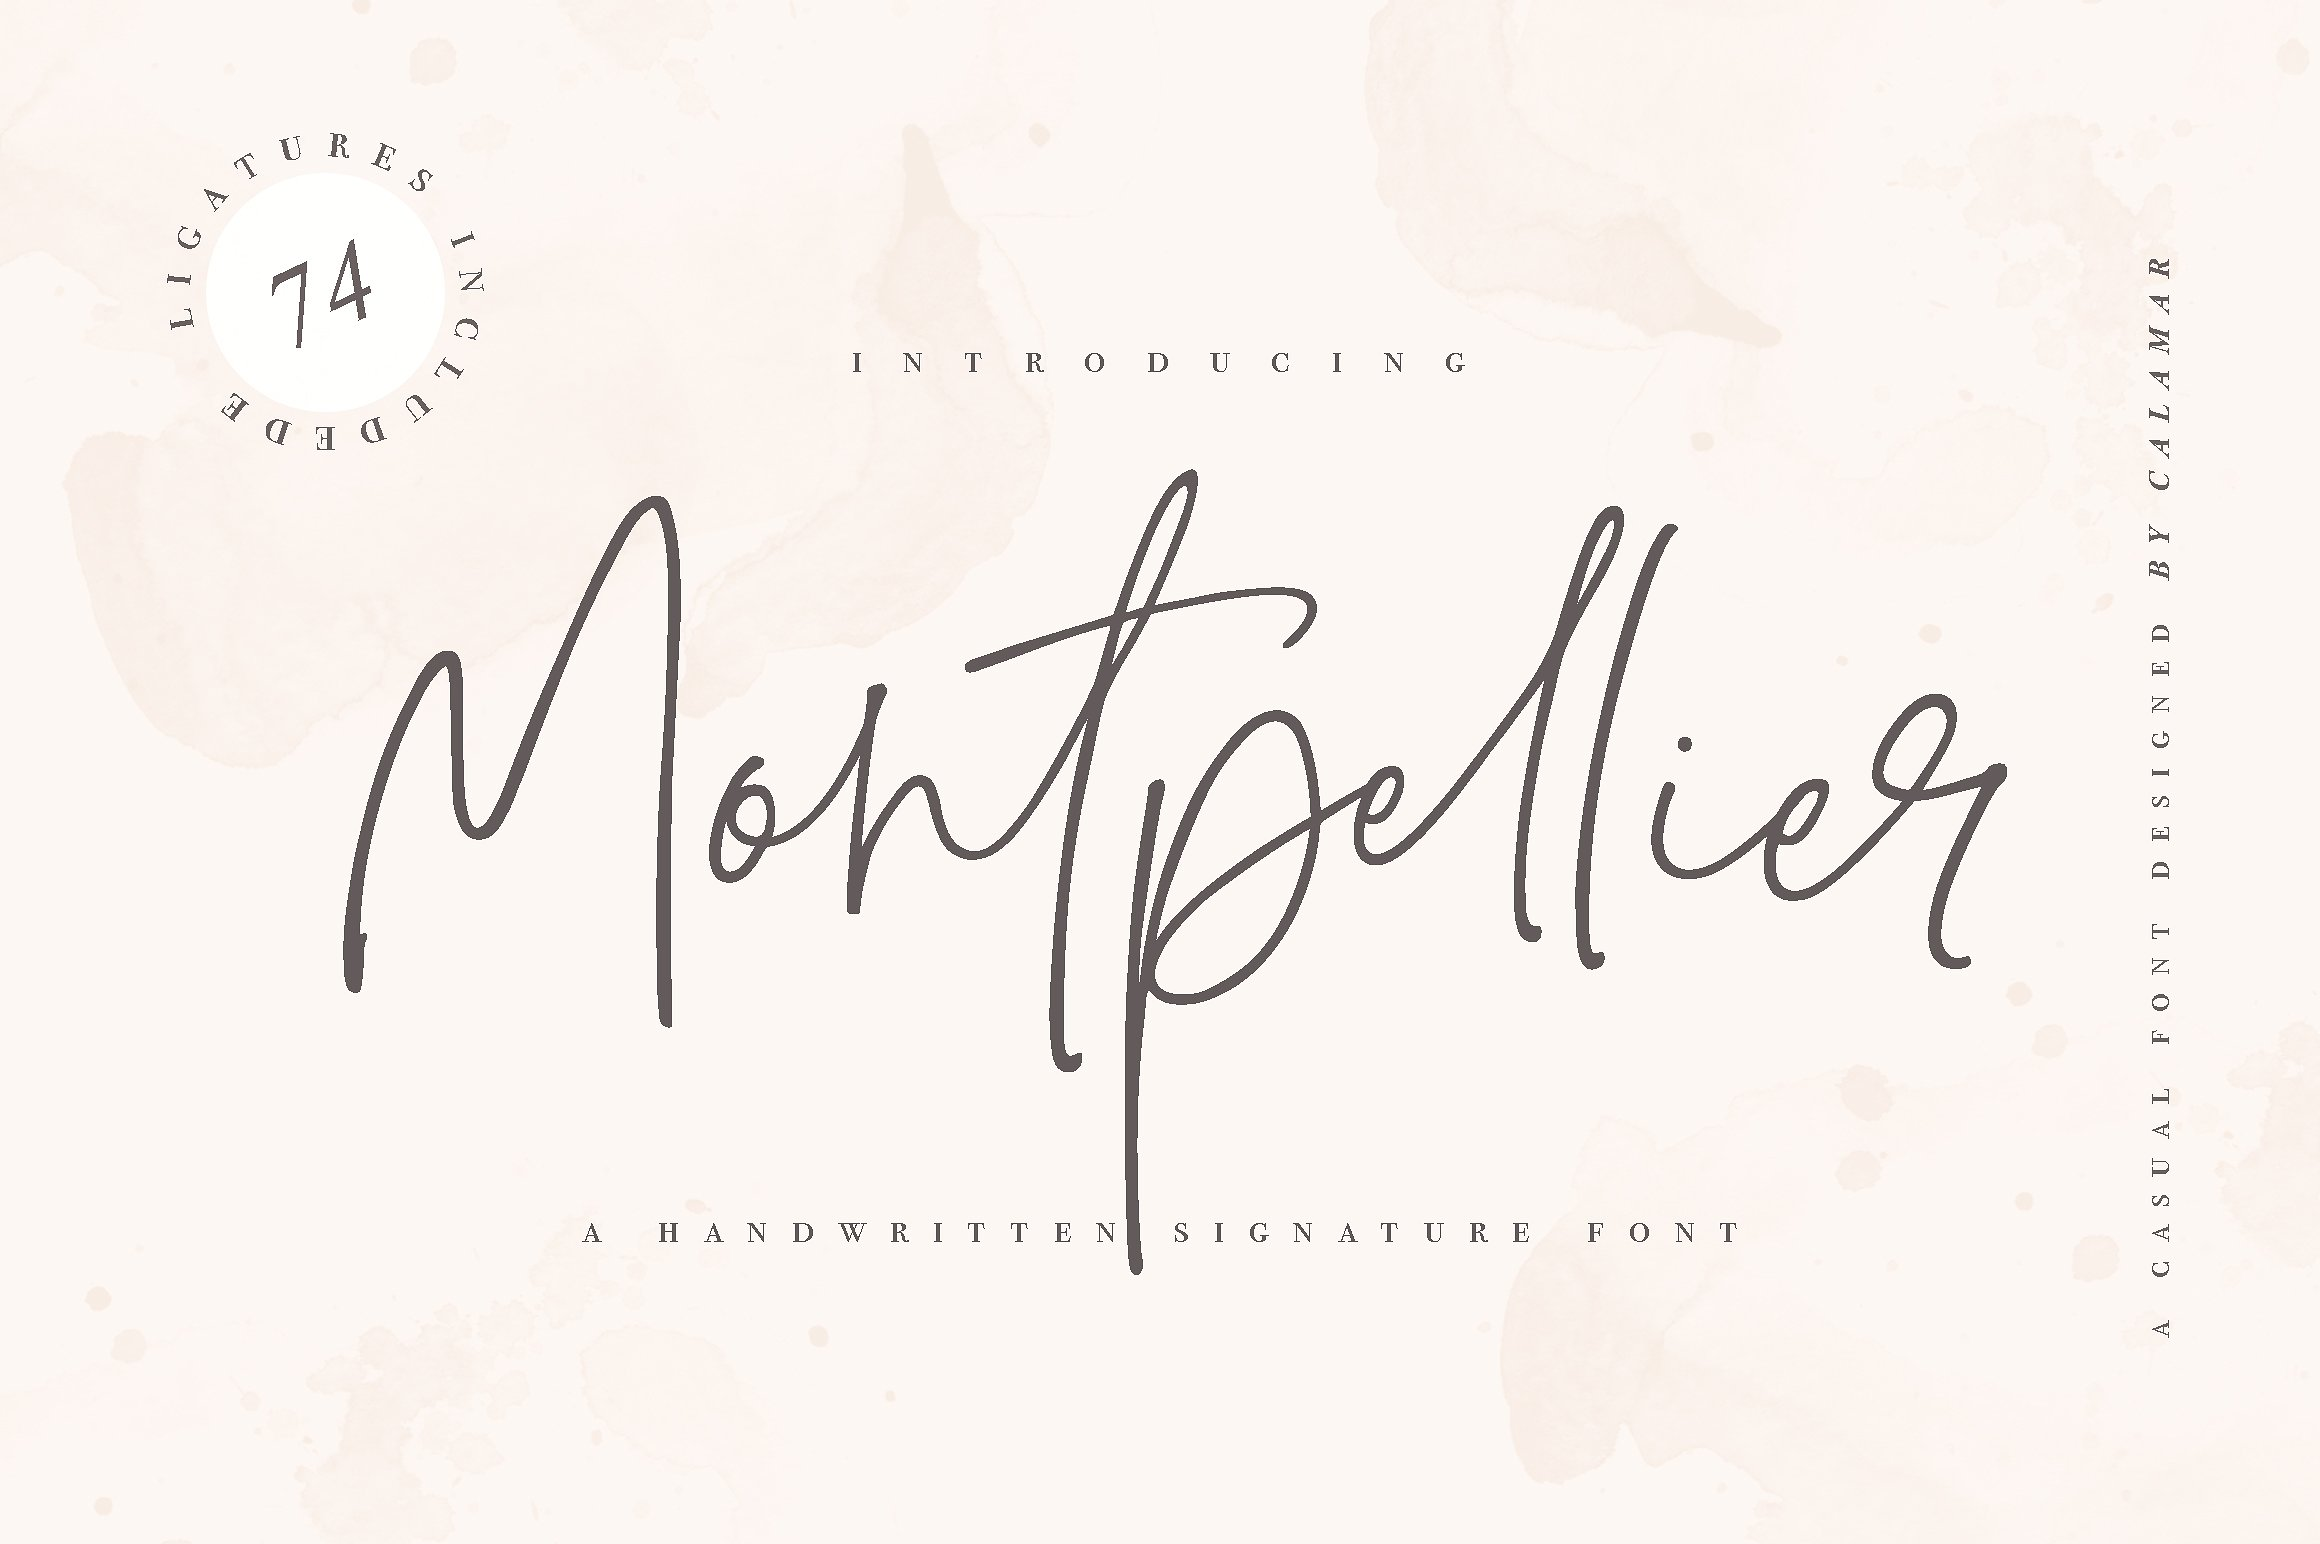 Montpellier Signature Font Montpellier Font is a handwritten signature font that is perfect for branding, social media headers, product packaging, wedding invites and cards and so on. This font is completely hand-drawn and contains 74 ligatures to perfectly re-create natural handwriting. Buy Now $18